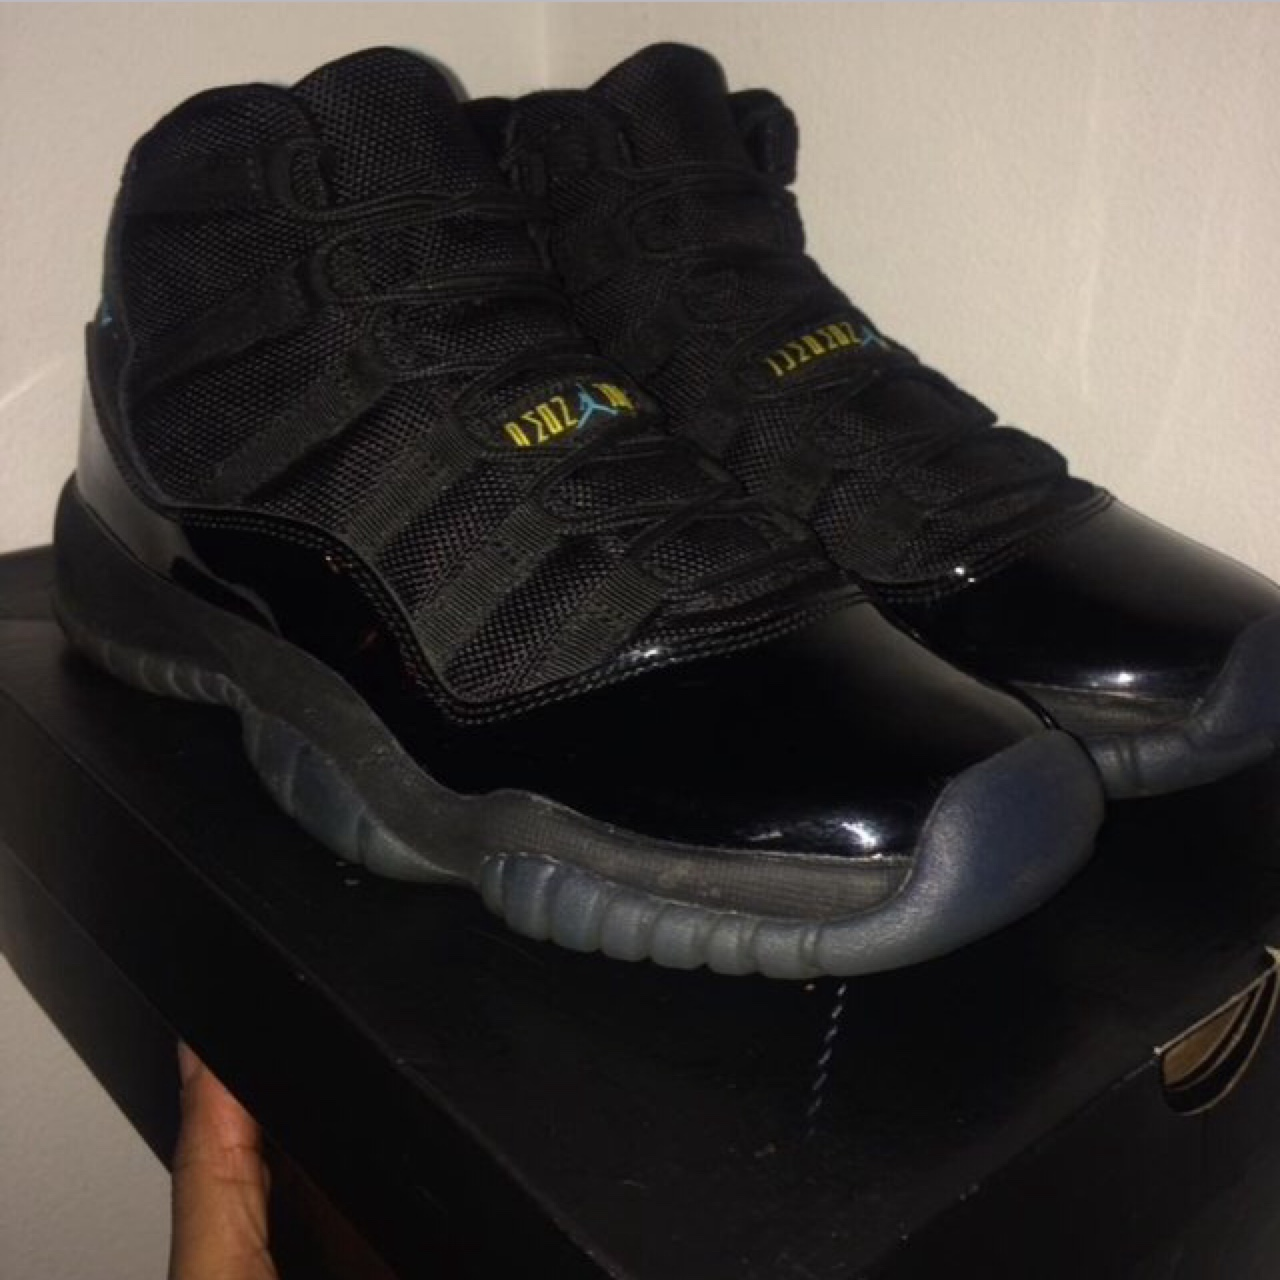 finest selection ef78a 46107 Jordan 11 gamma blue (GS)- size 6 (with box). I have... - Depop